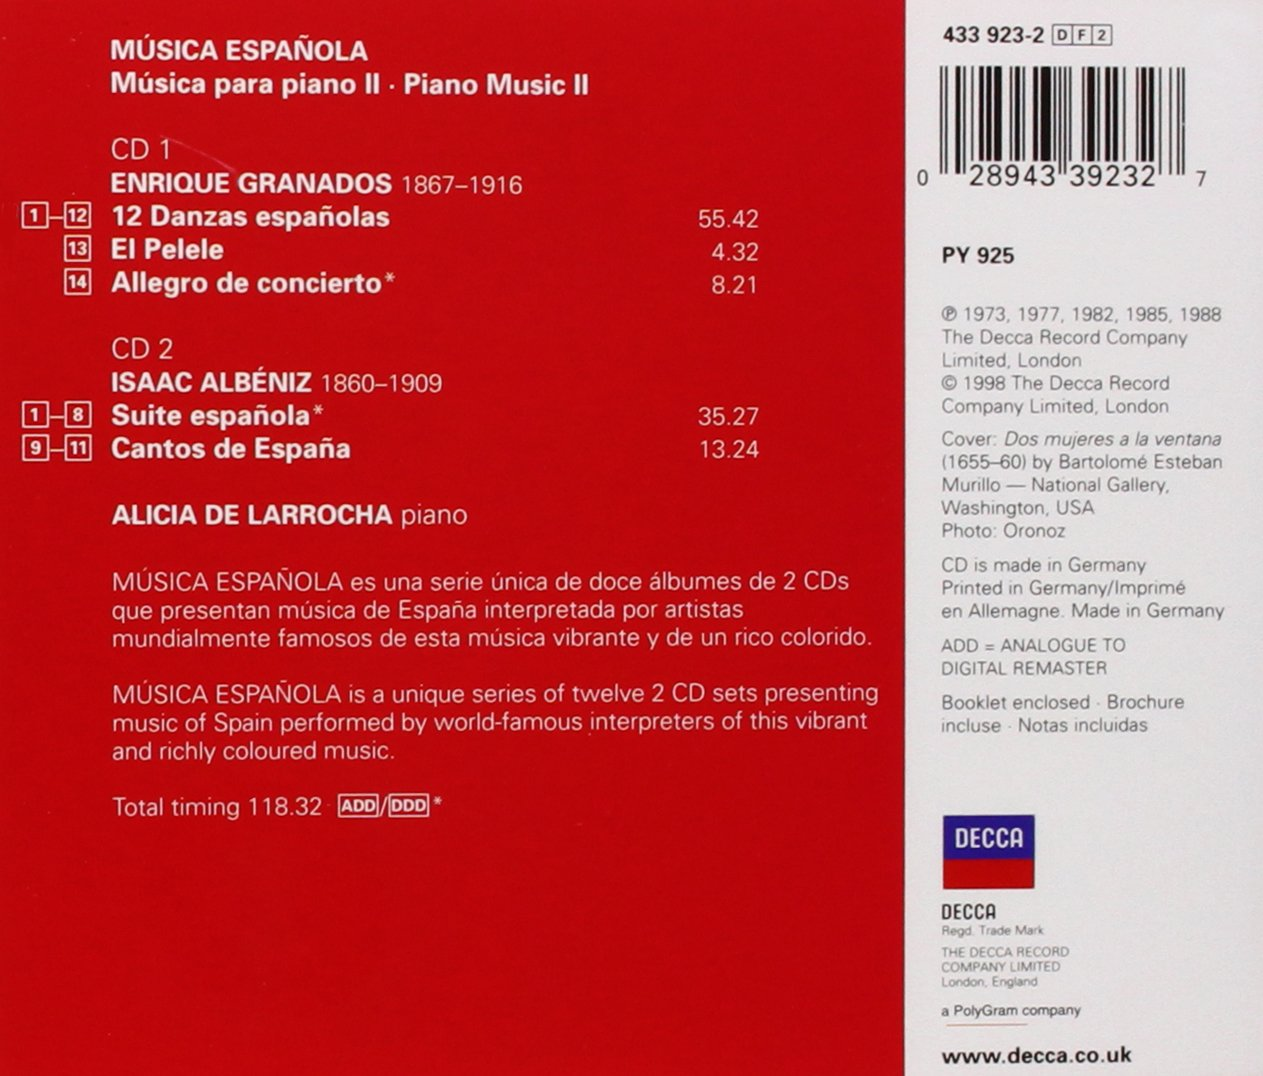 Spanish Music for Piano II - Albéniz/Granados: Alicia de Larrocha: Amazon.es: Música